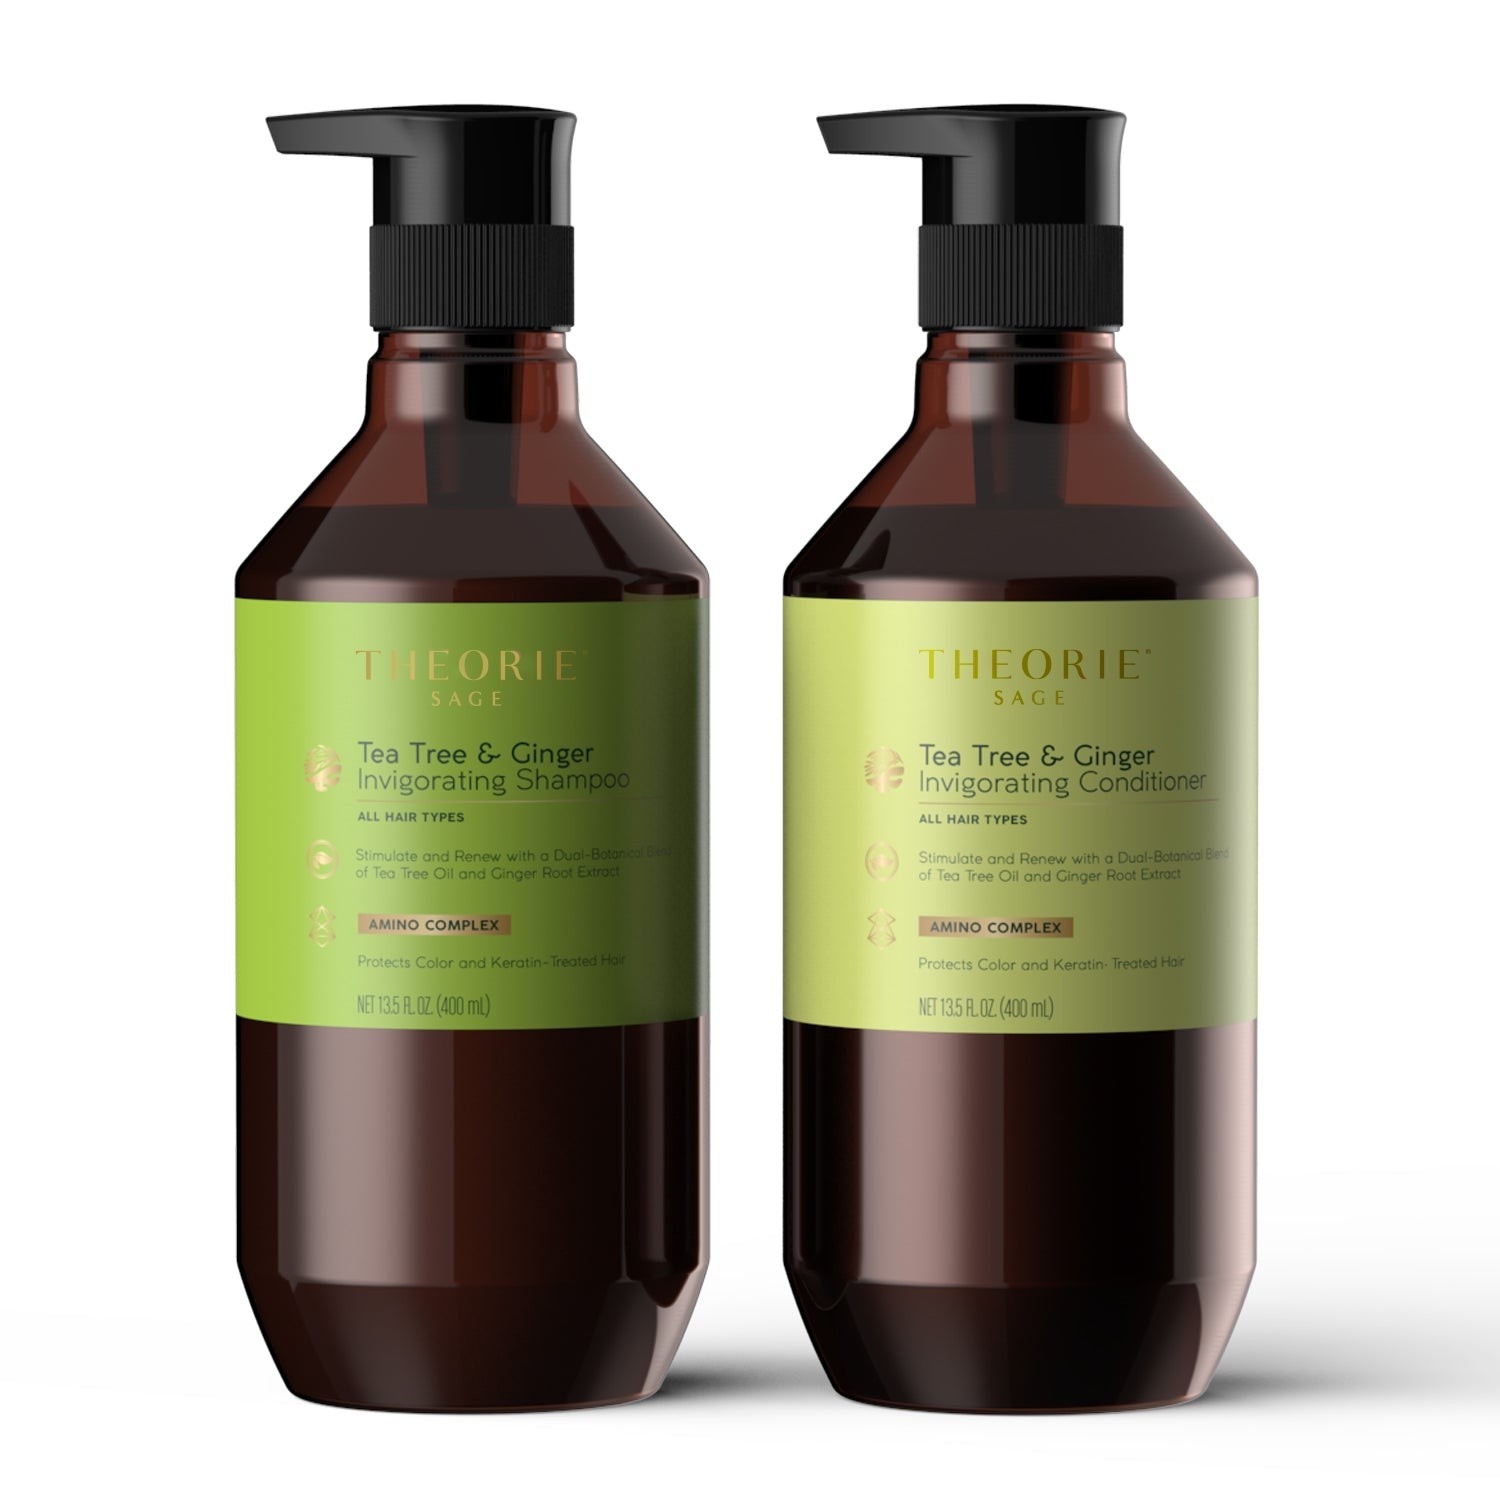 Theorie: Sage - Tea Tree & Ginger Invigorating Shampoo & Condition Set